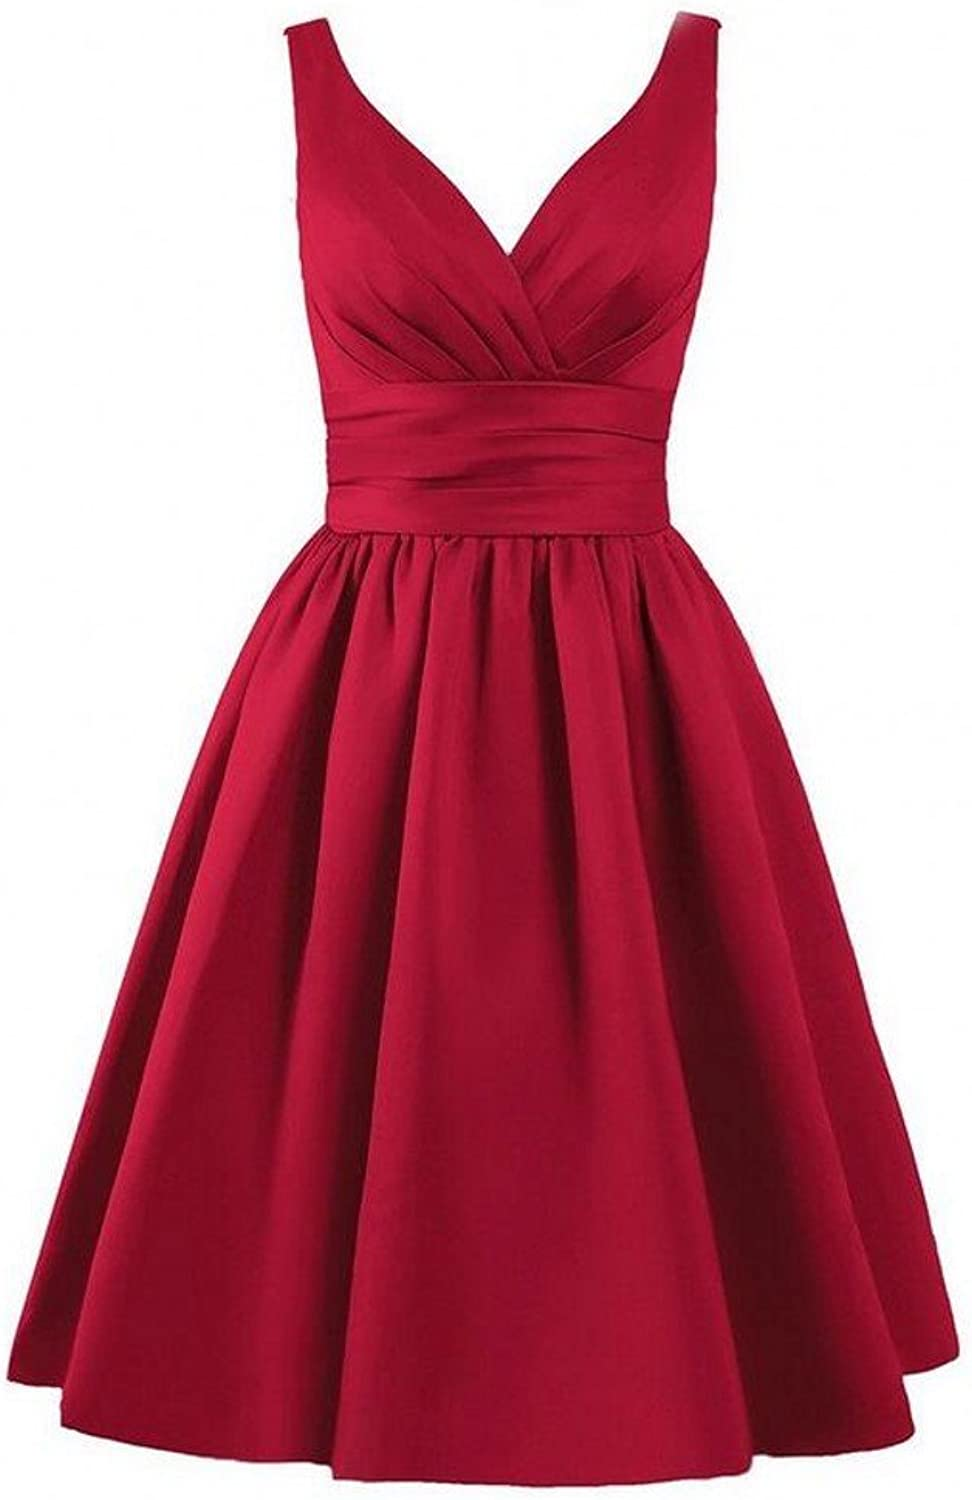 AK Beauty Women's VNeck Sleeveless Prom Gown Short Lace Up Bridesmaid Dresses